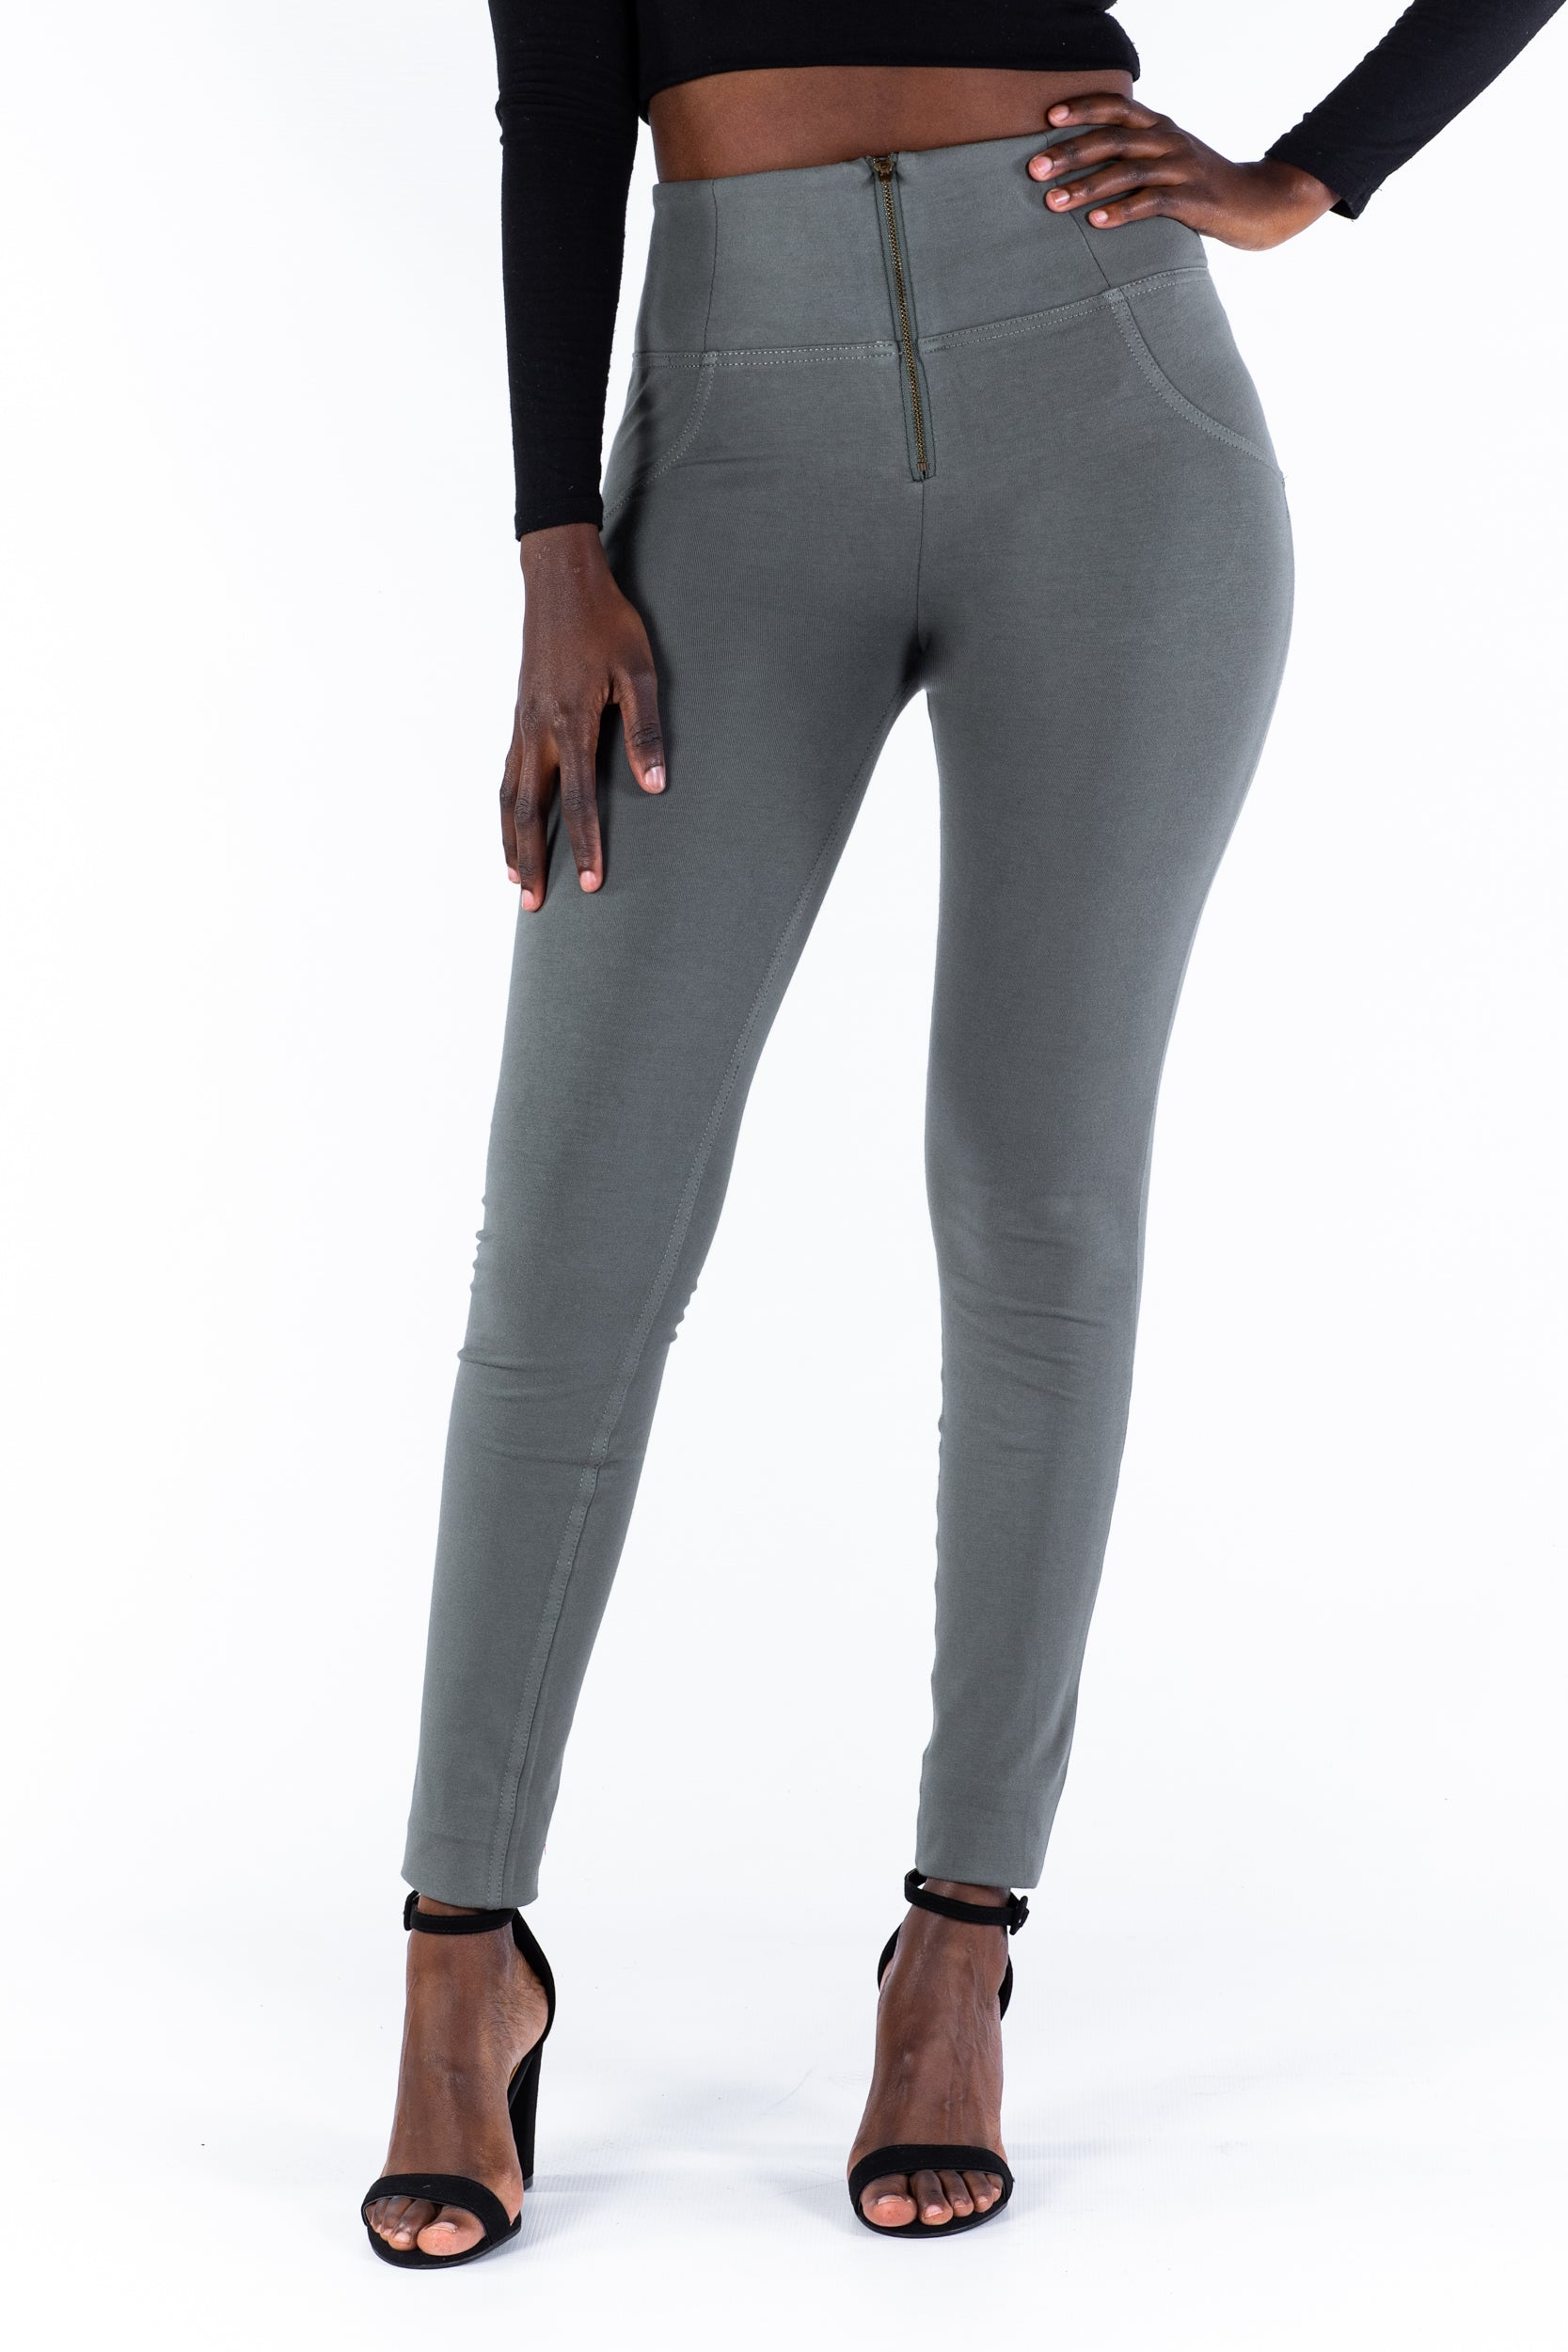 Image of High waist Butt lifting Jeggings - Olive